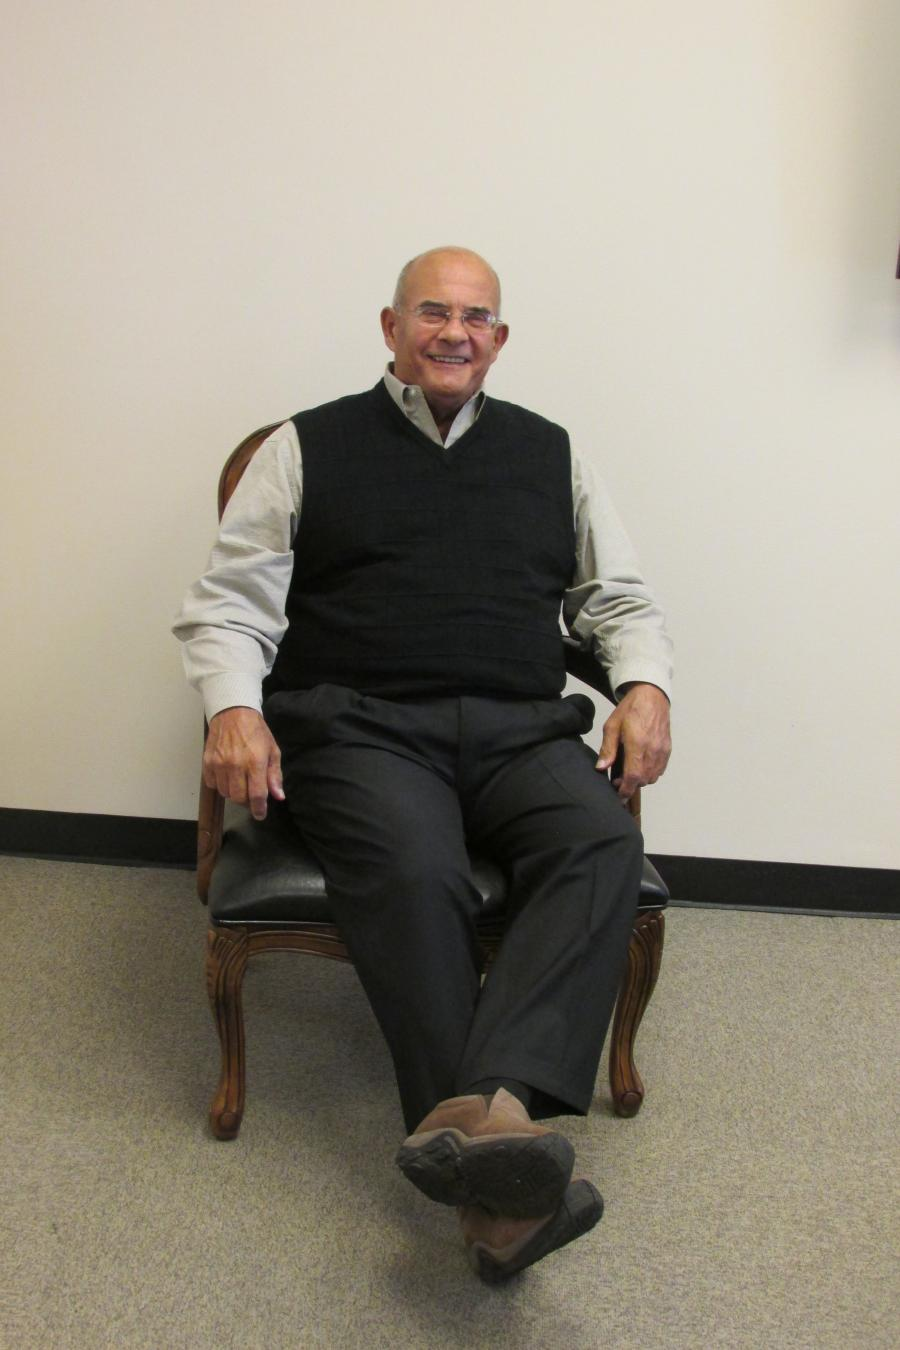 Pat DiCicco of Eagle Power & Equipment in Montgomeryville, Pa., has had a long, successful, distinguished career filled with milestones. In January 2021, he celebrated another one — 50 years working for the same company.